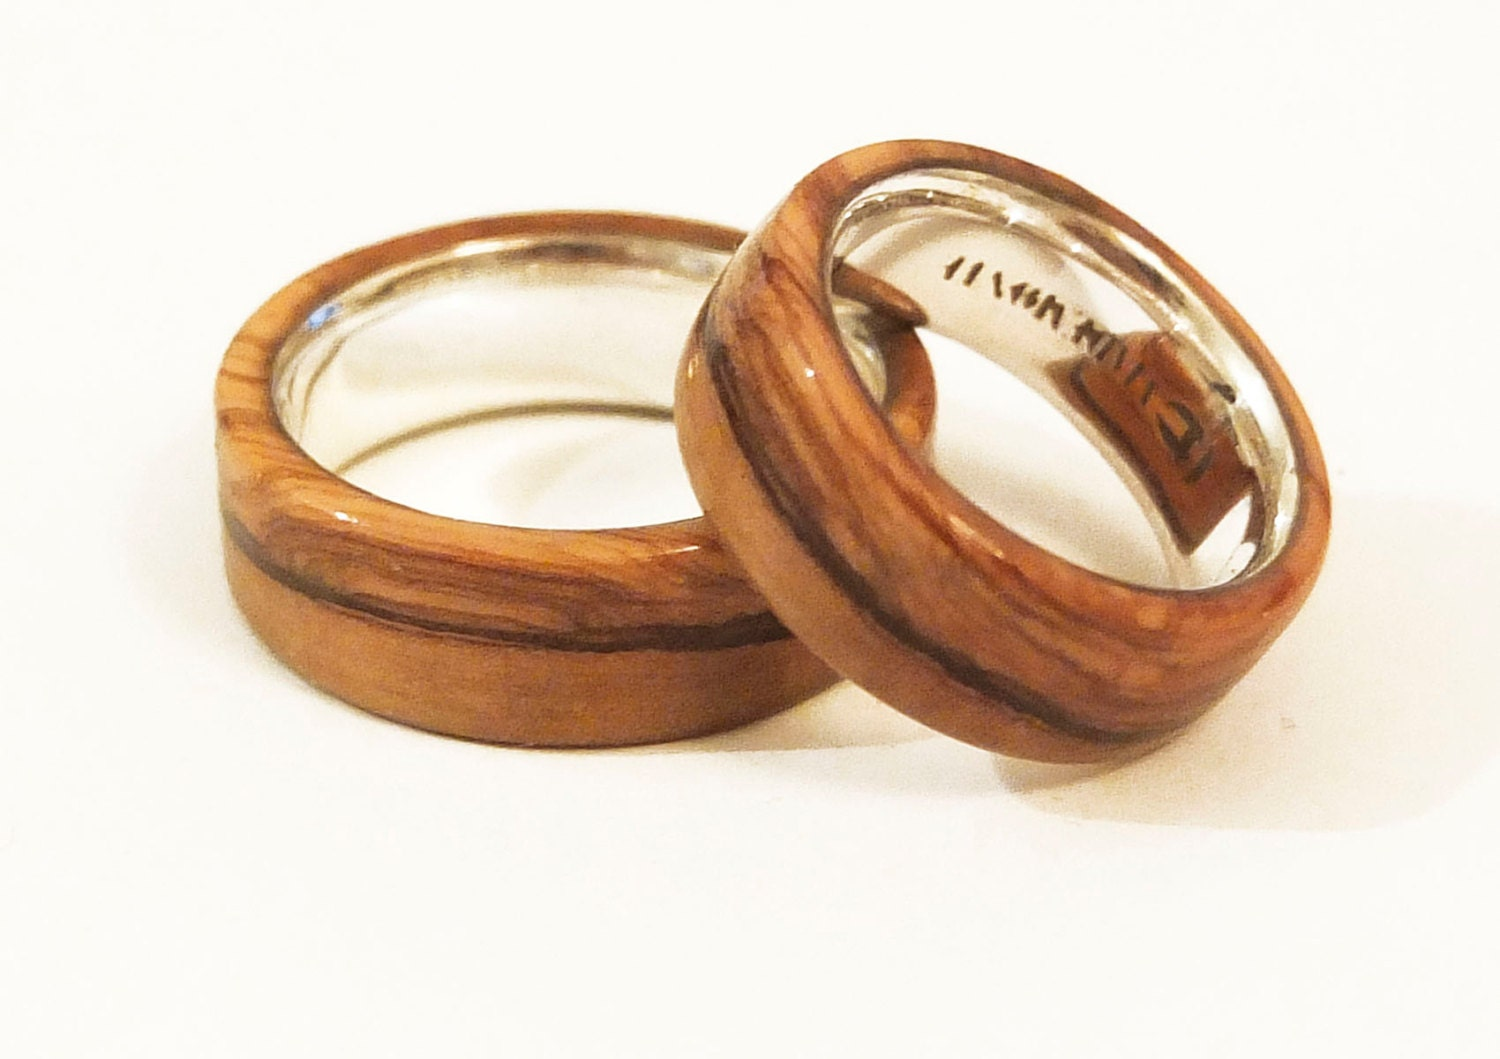 Wedding Bands Wood Olive Wood Rings Set Silver Sterling Ring. Men Gold Jewellery. Antique Gold Necklace. 6 Prong Round Engagement Rings. White Tanzanite10000 Dollar Watches. Cartier Mens Bands. Brown Diamond Engagement Rings. Groom Rings. Colorful Bracelet